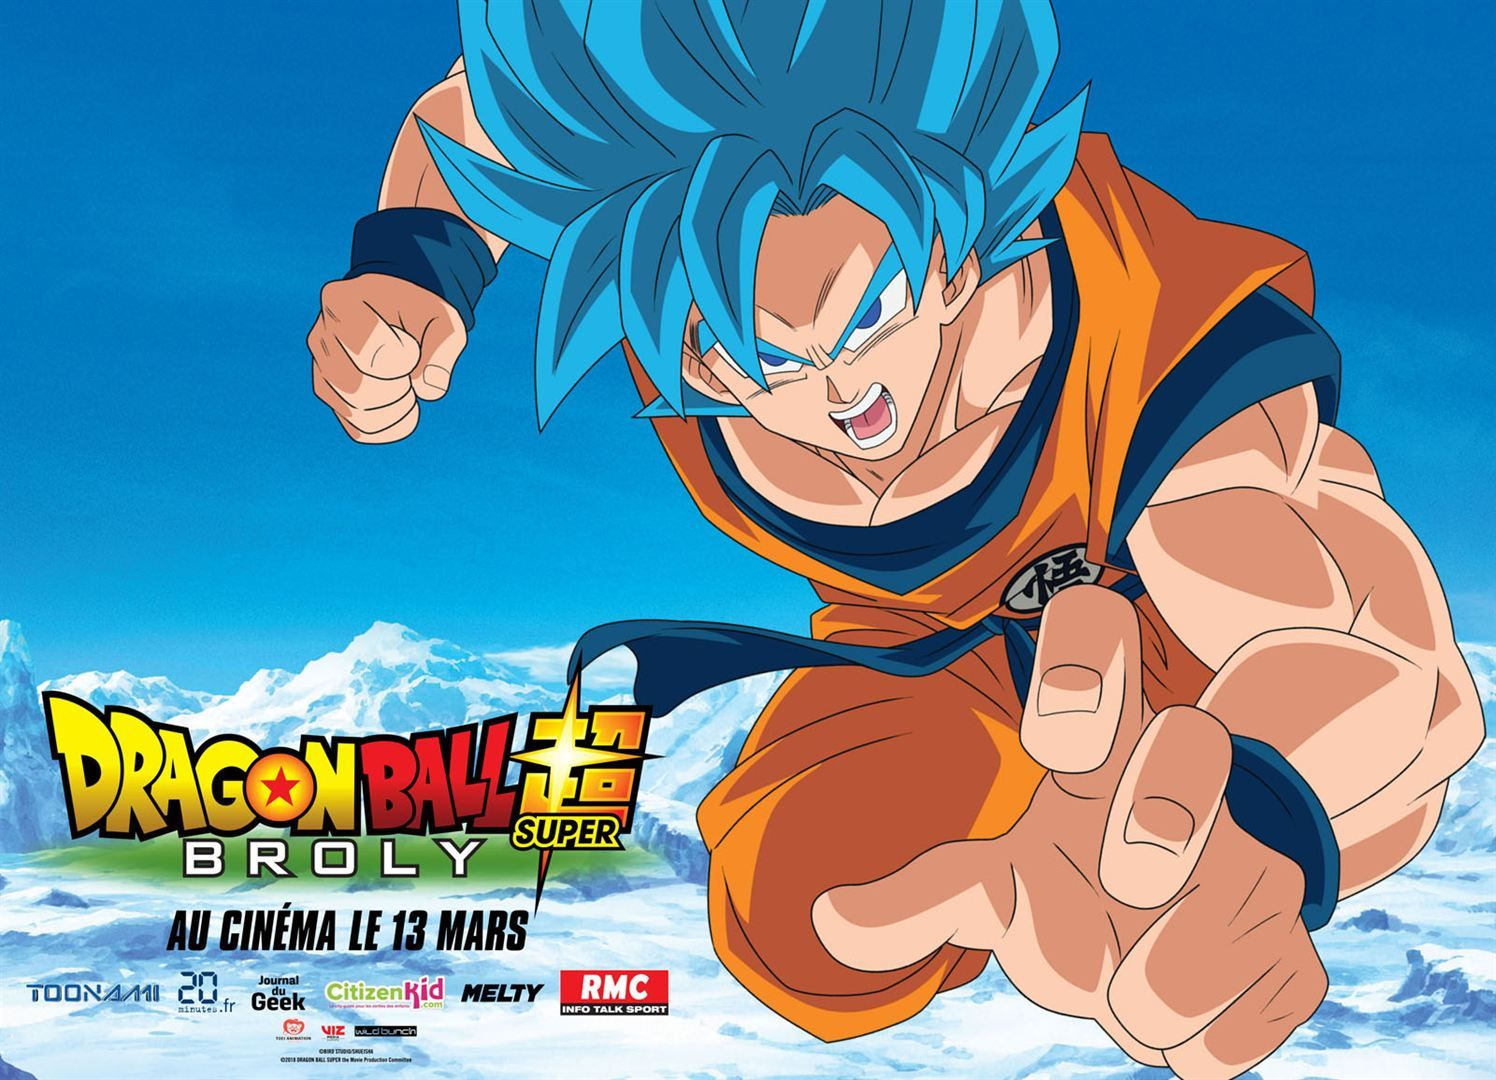 Dragon ball super broly affiche fr 02